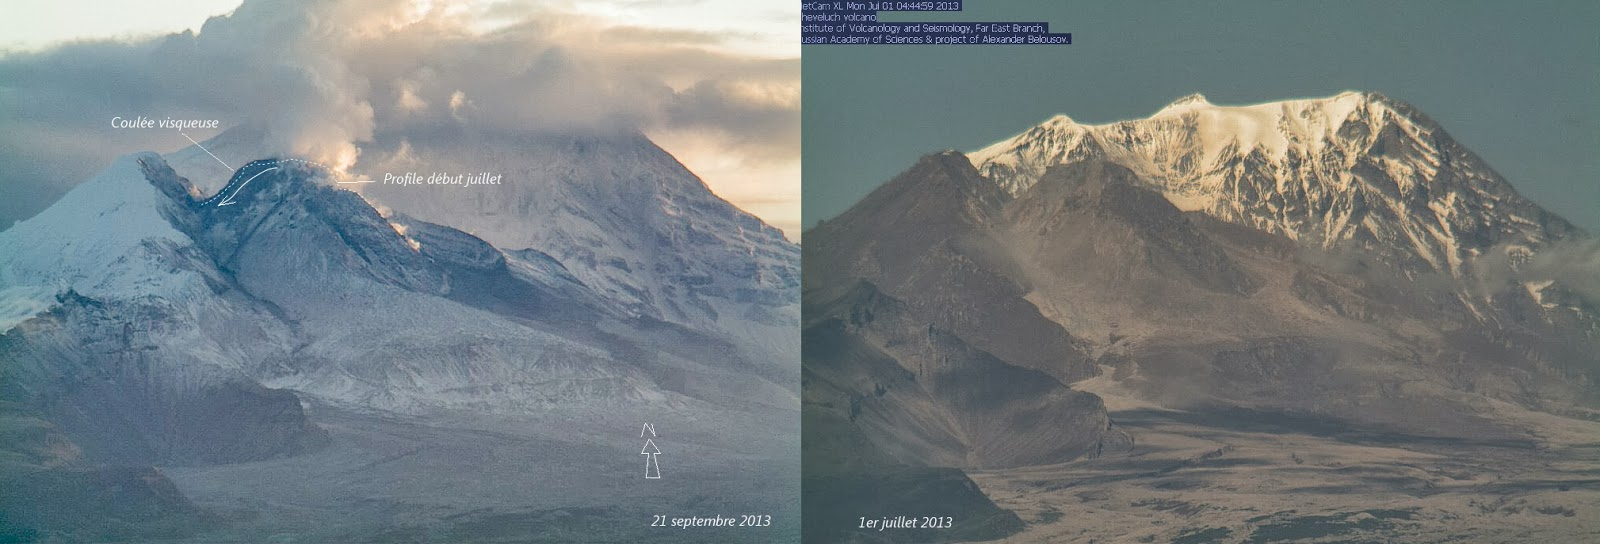 Evolution de la coulée du volcan Shiveluch, 21 septembre 2013